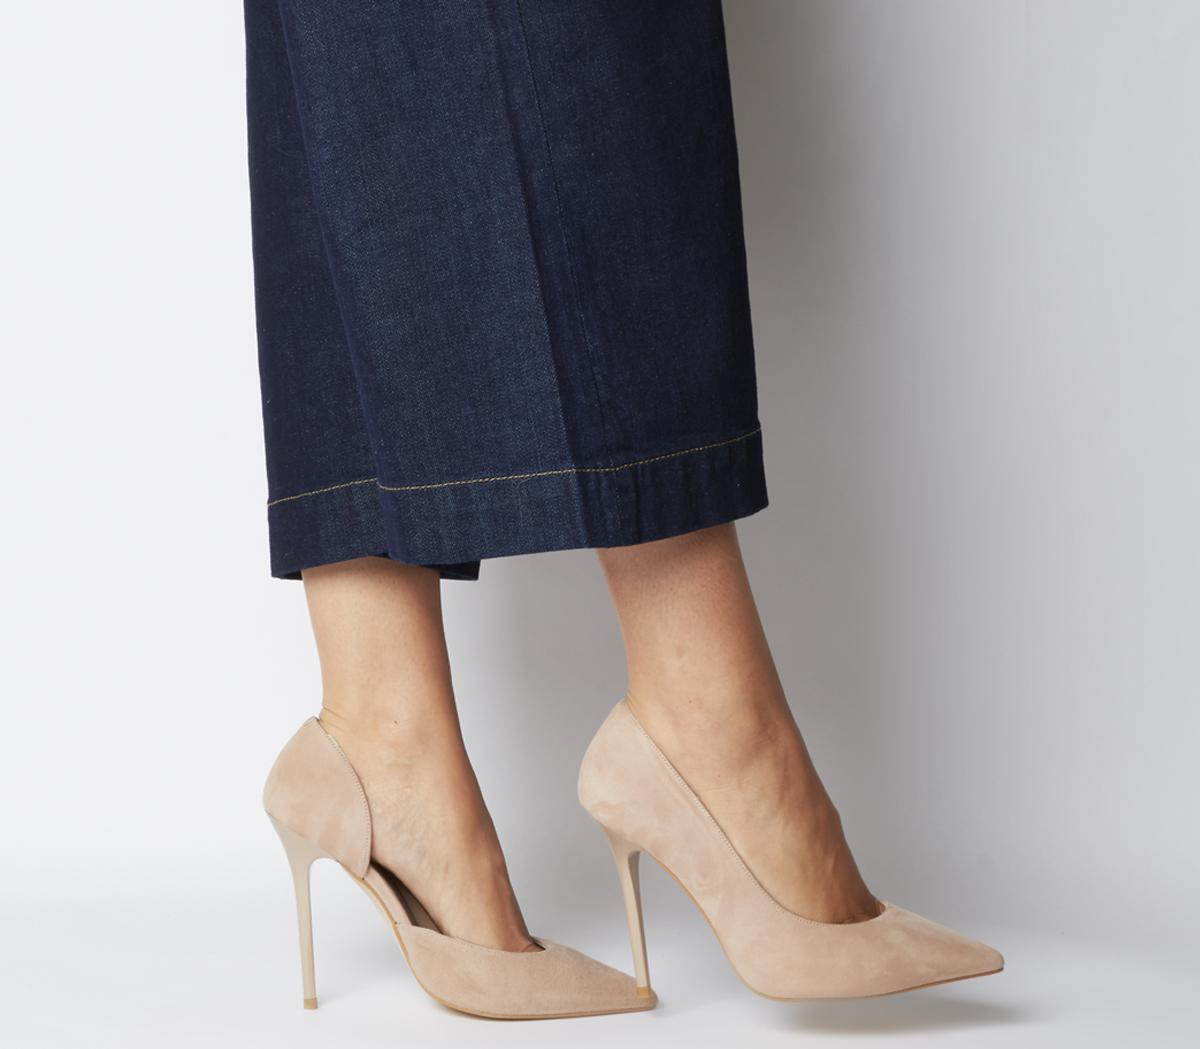 Office Happiness Court Shoes Nude Suede